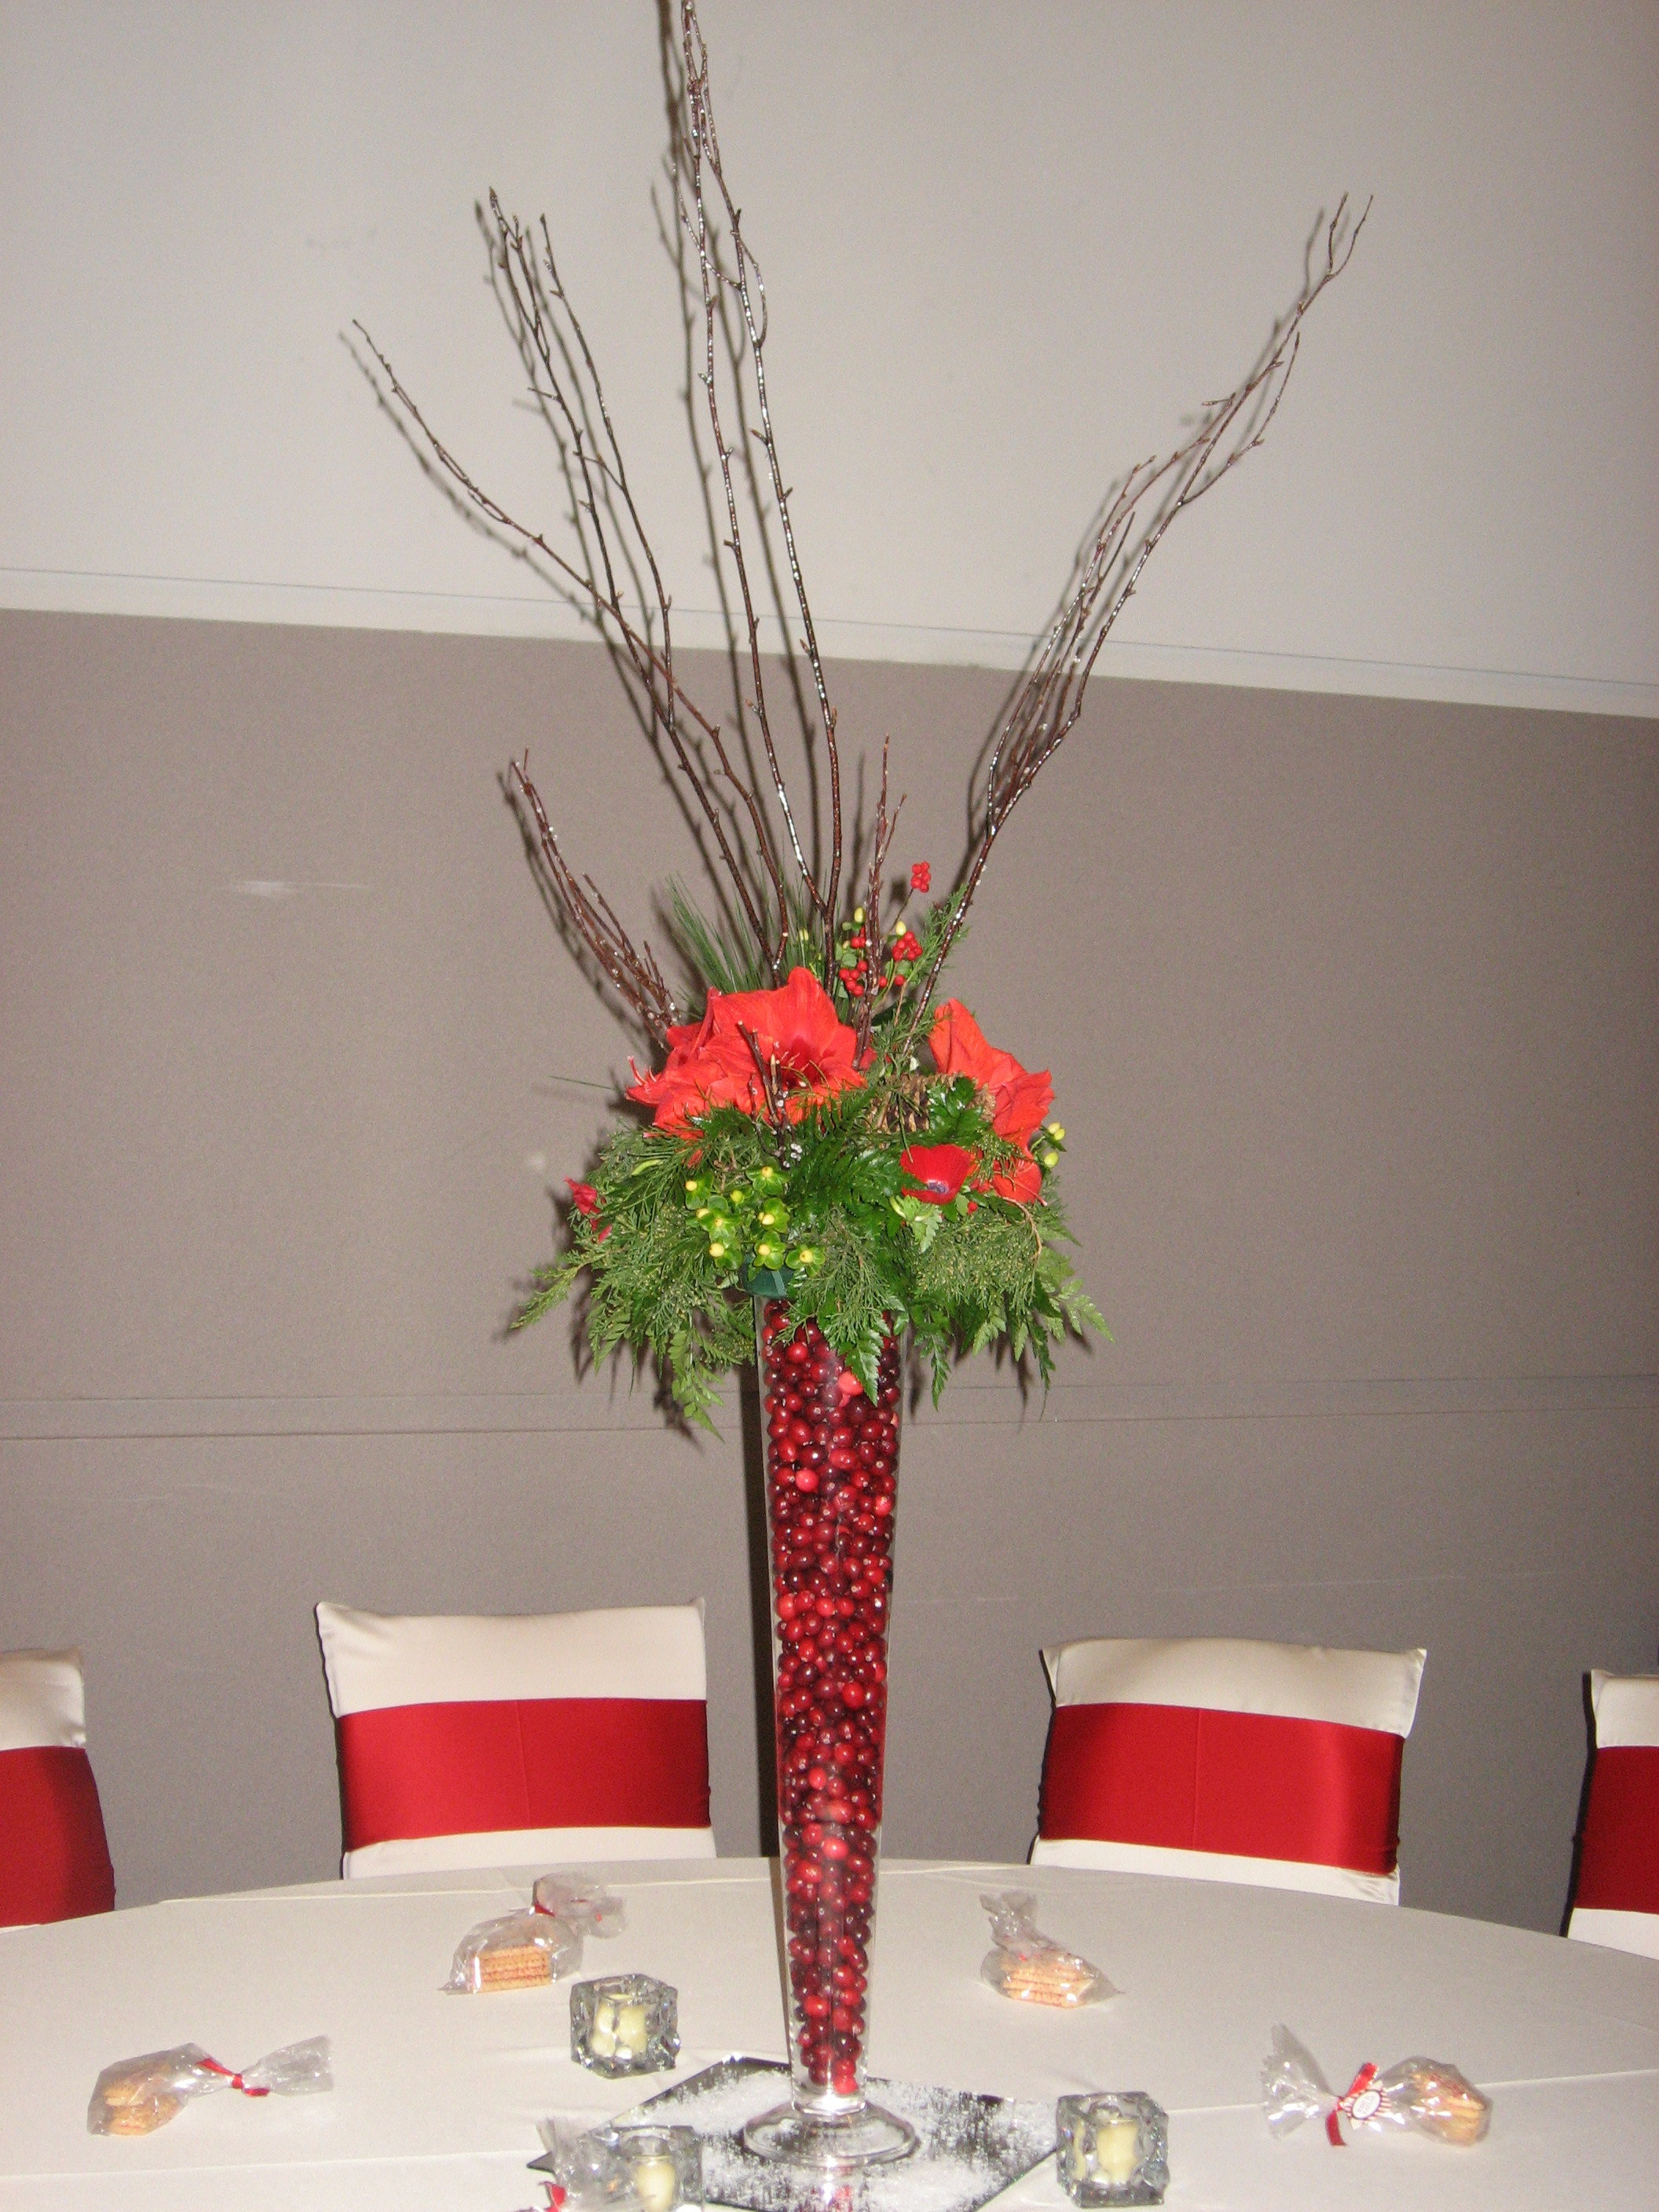 Reception, Flowers & Decor, white, red, green, silver, Centerpieces, Flowers, Centerpiece, Amaryllis, Flowerbudcom